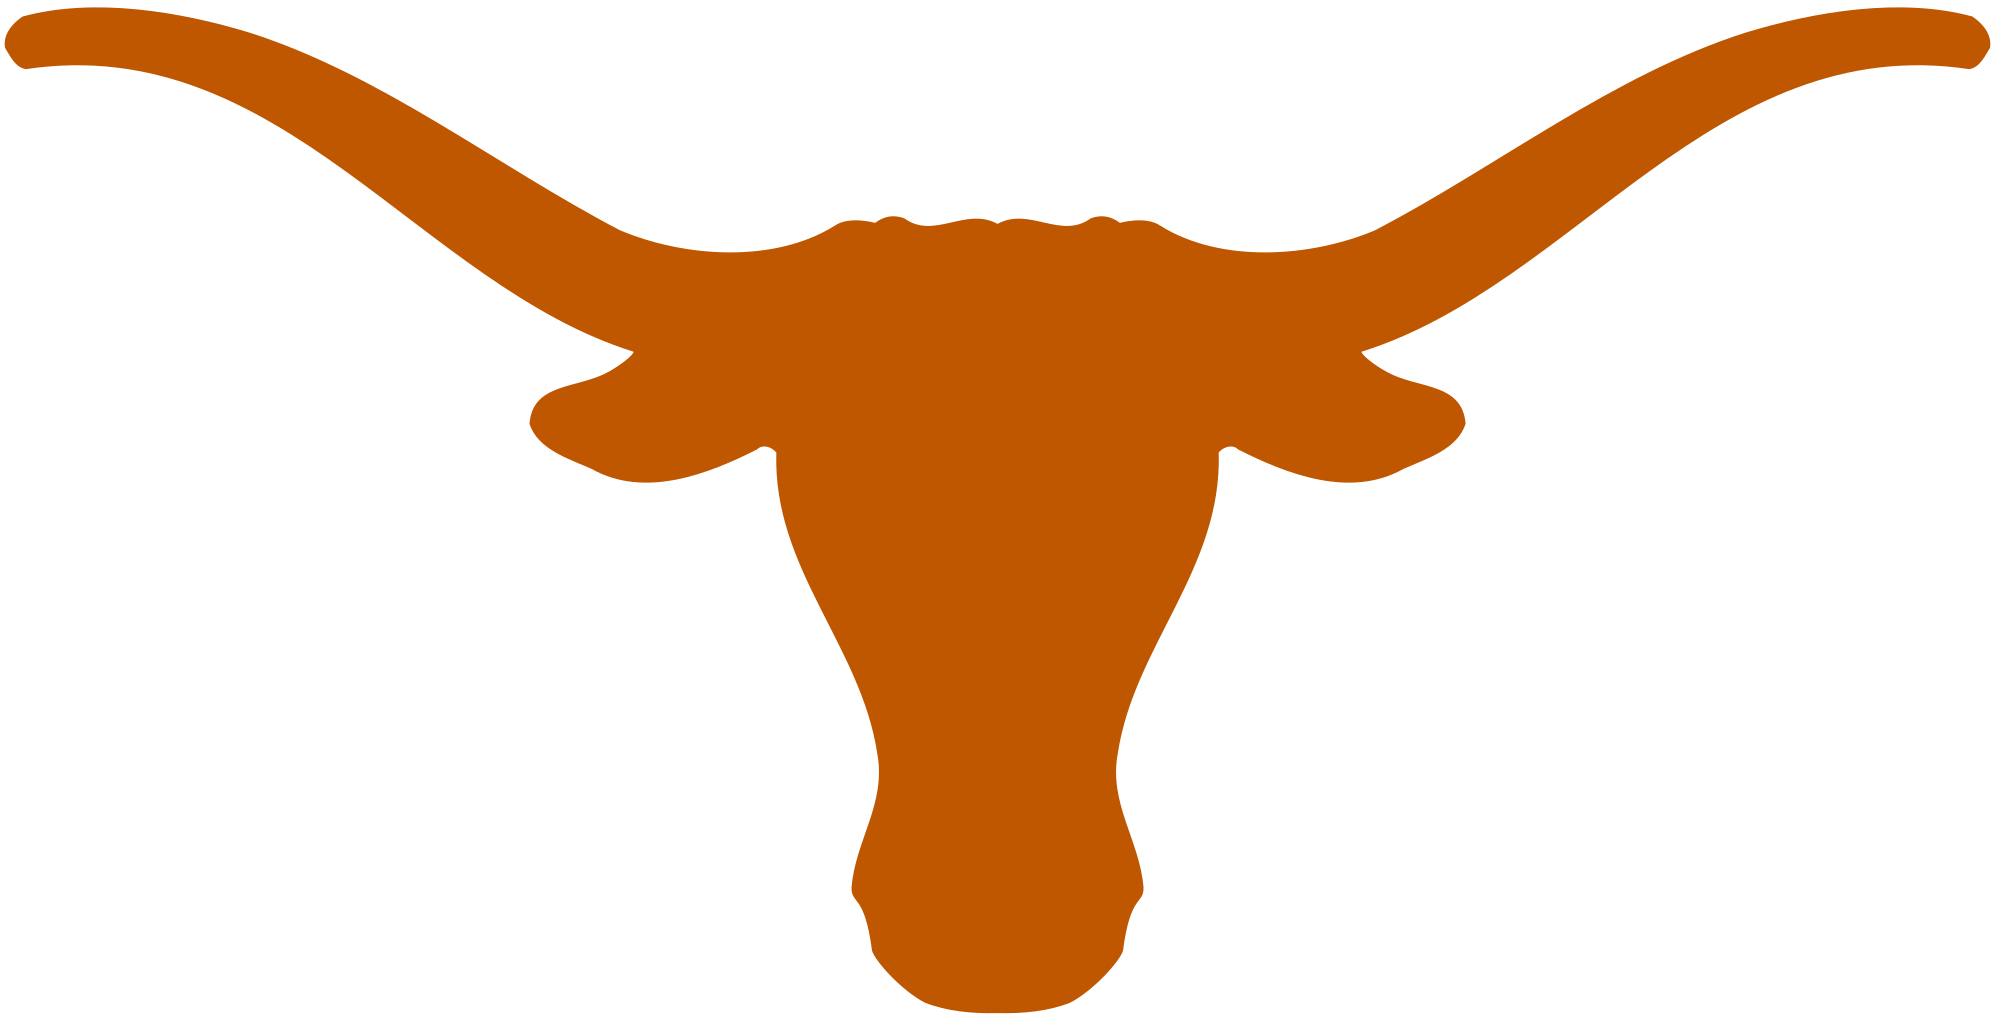 Texas Longhorn - Wikipedia